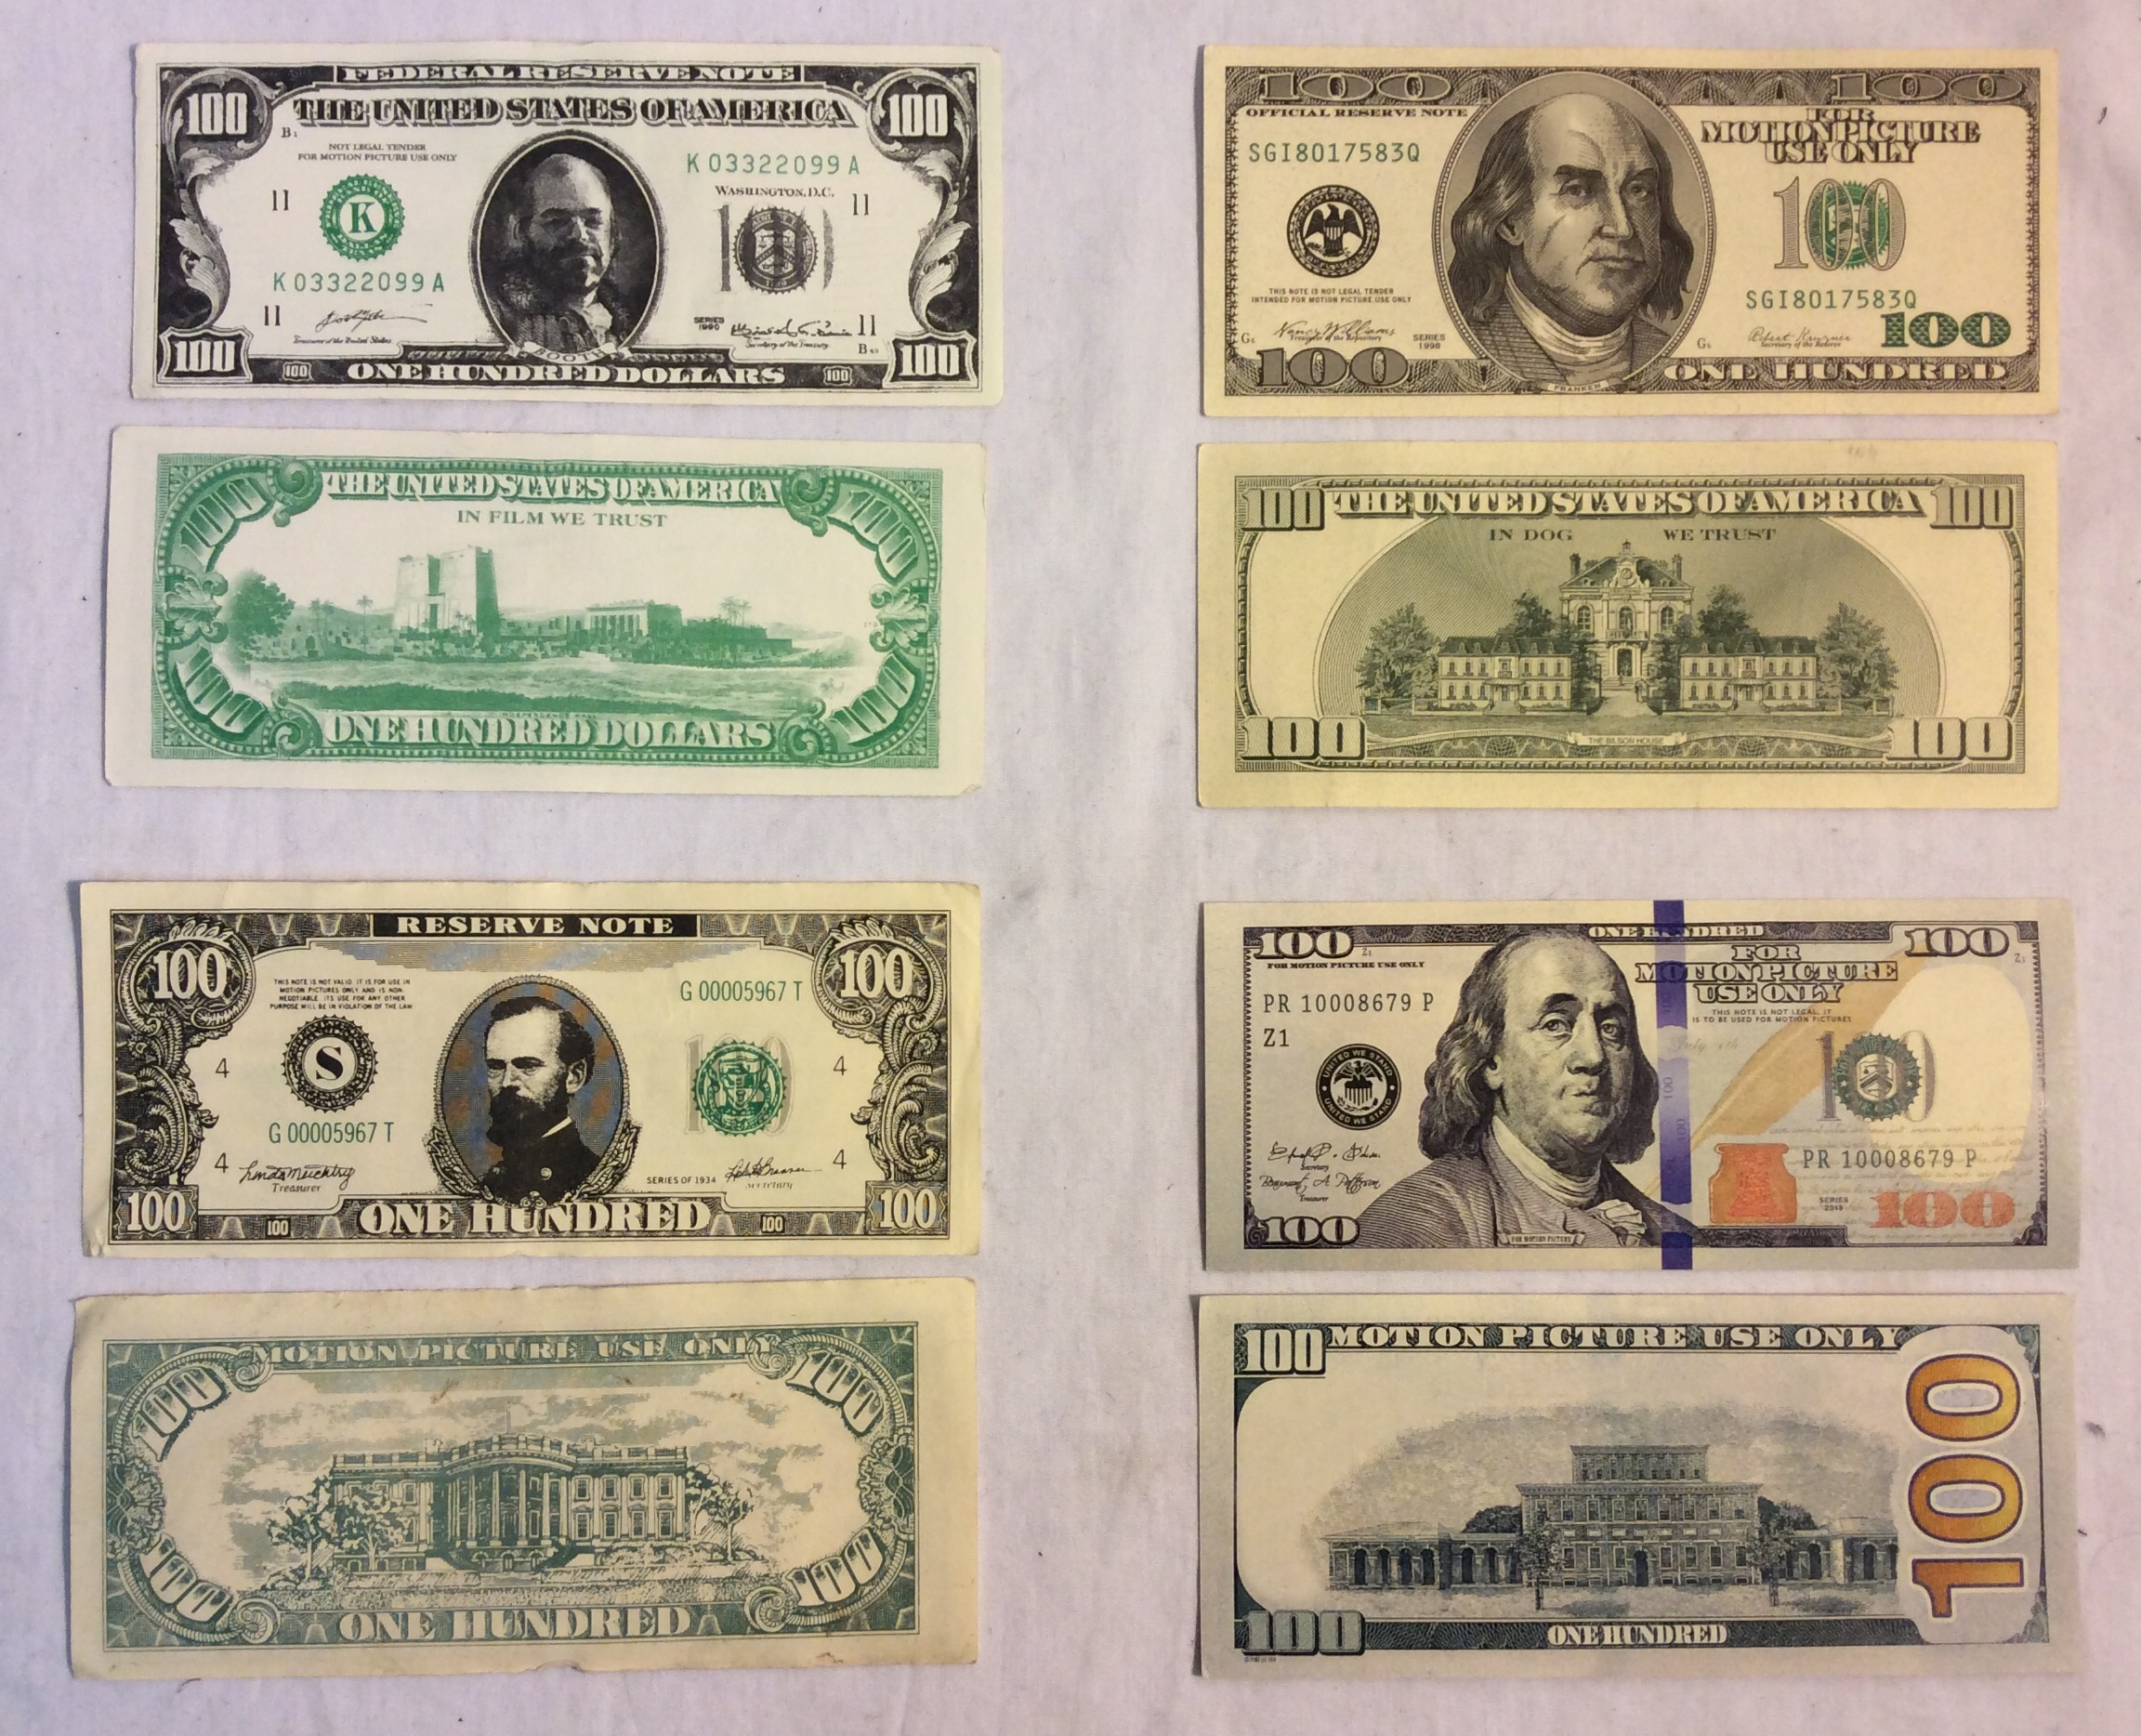 US $100 Bill, double-sided, 4 styles